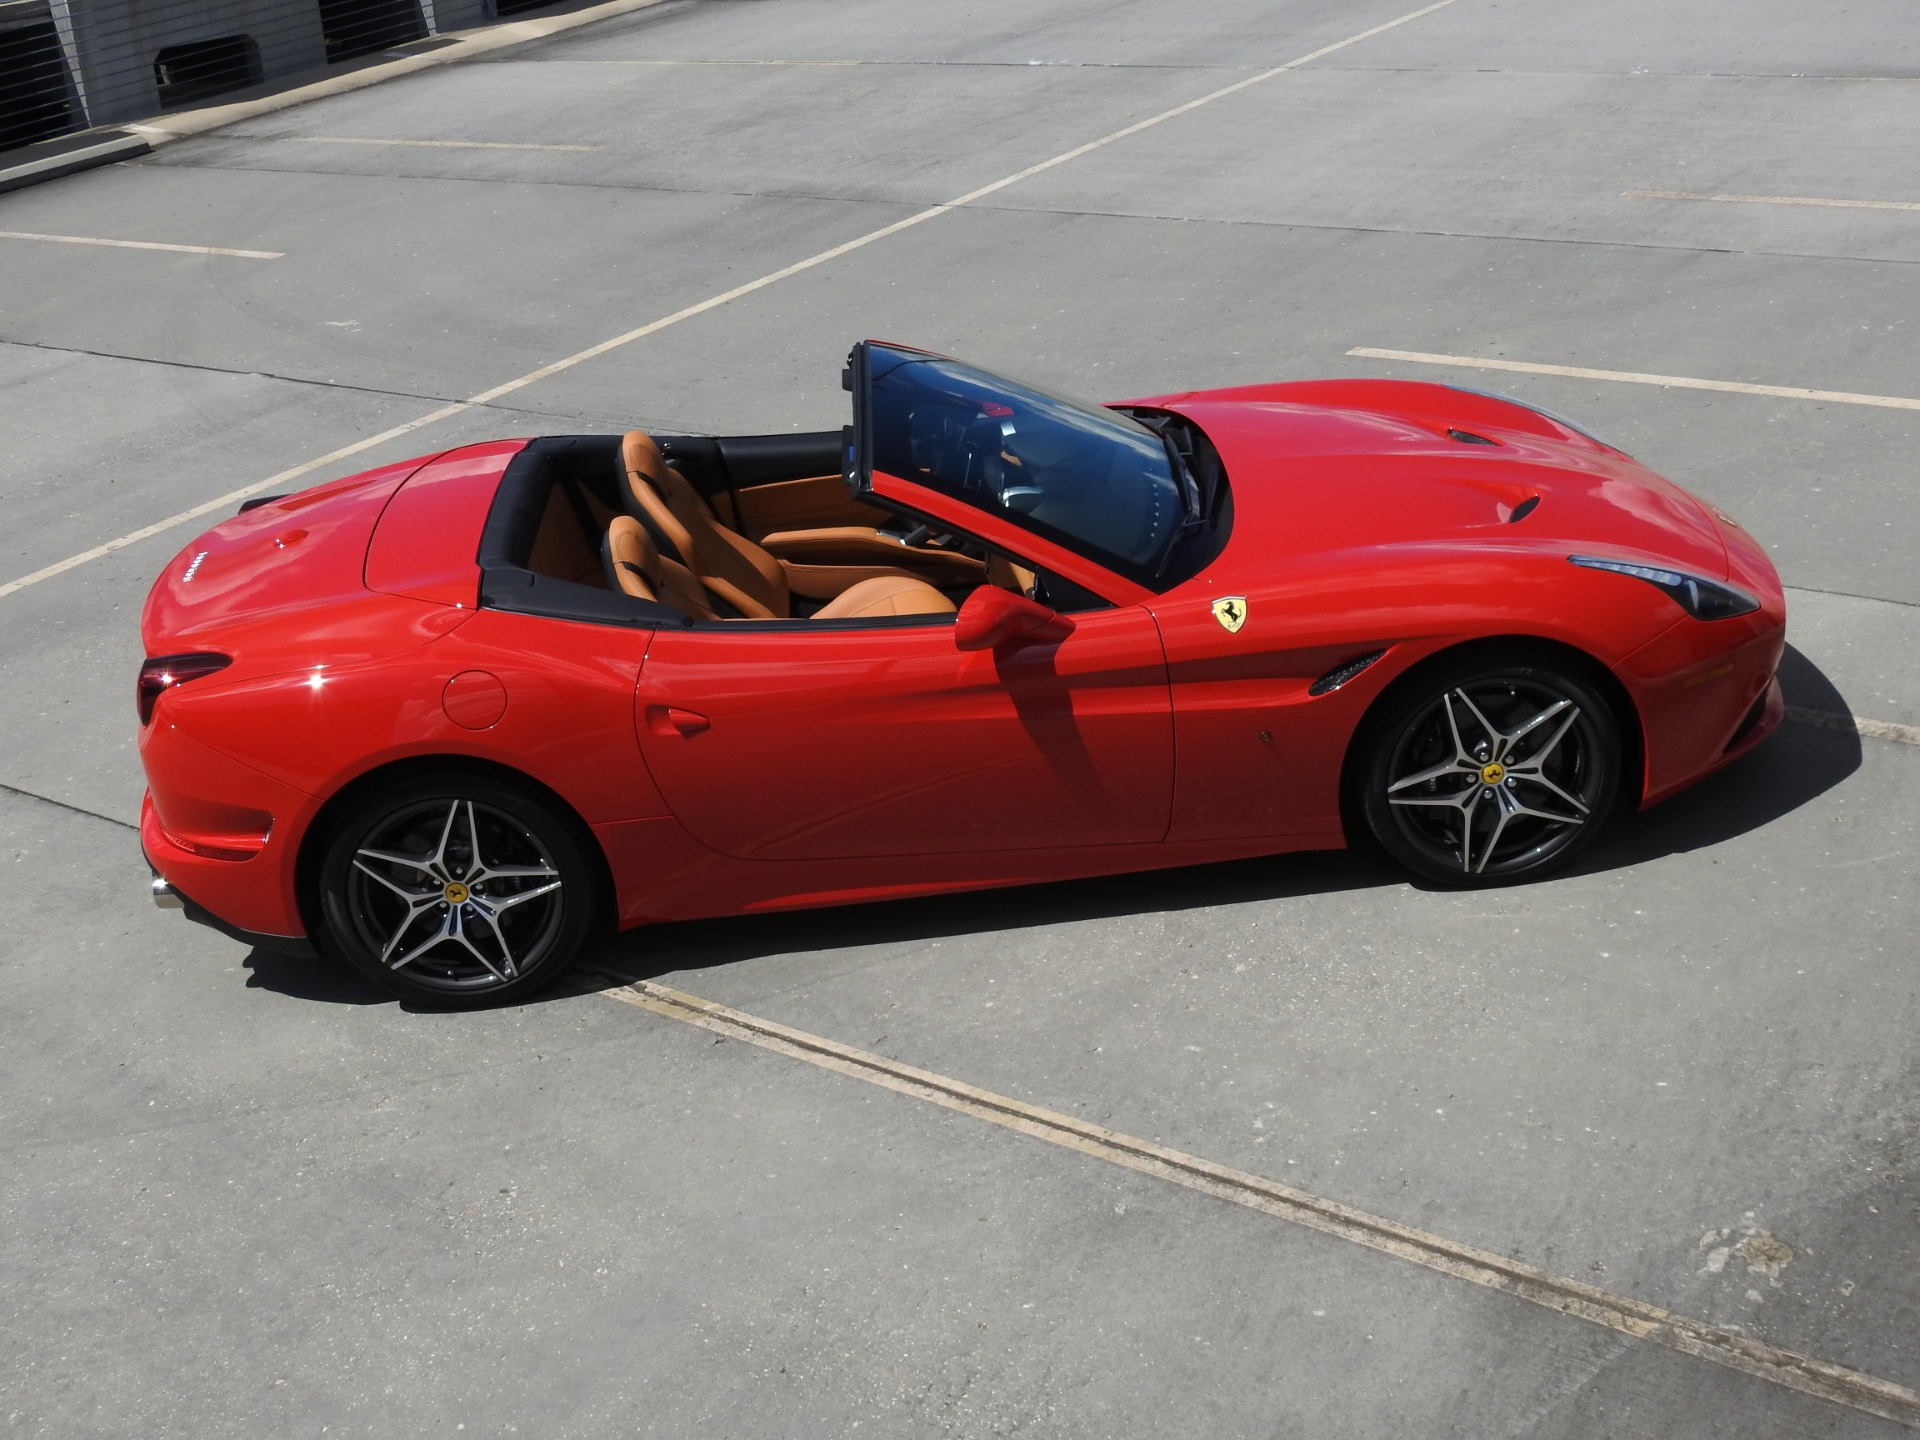 Used-2018-Ferrari-California-T-Jackson-MS